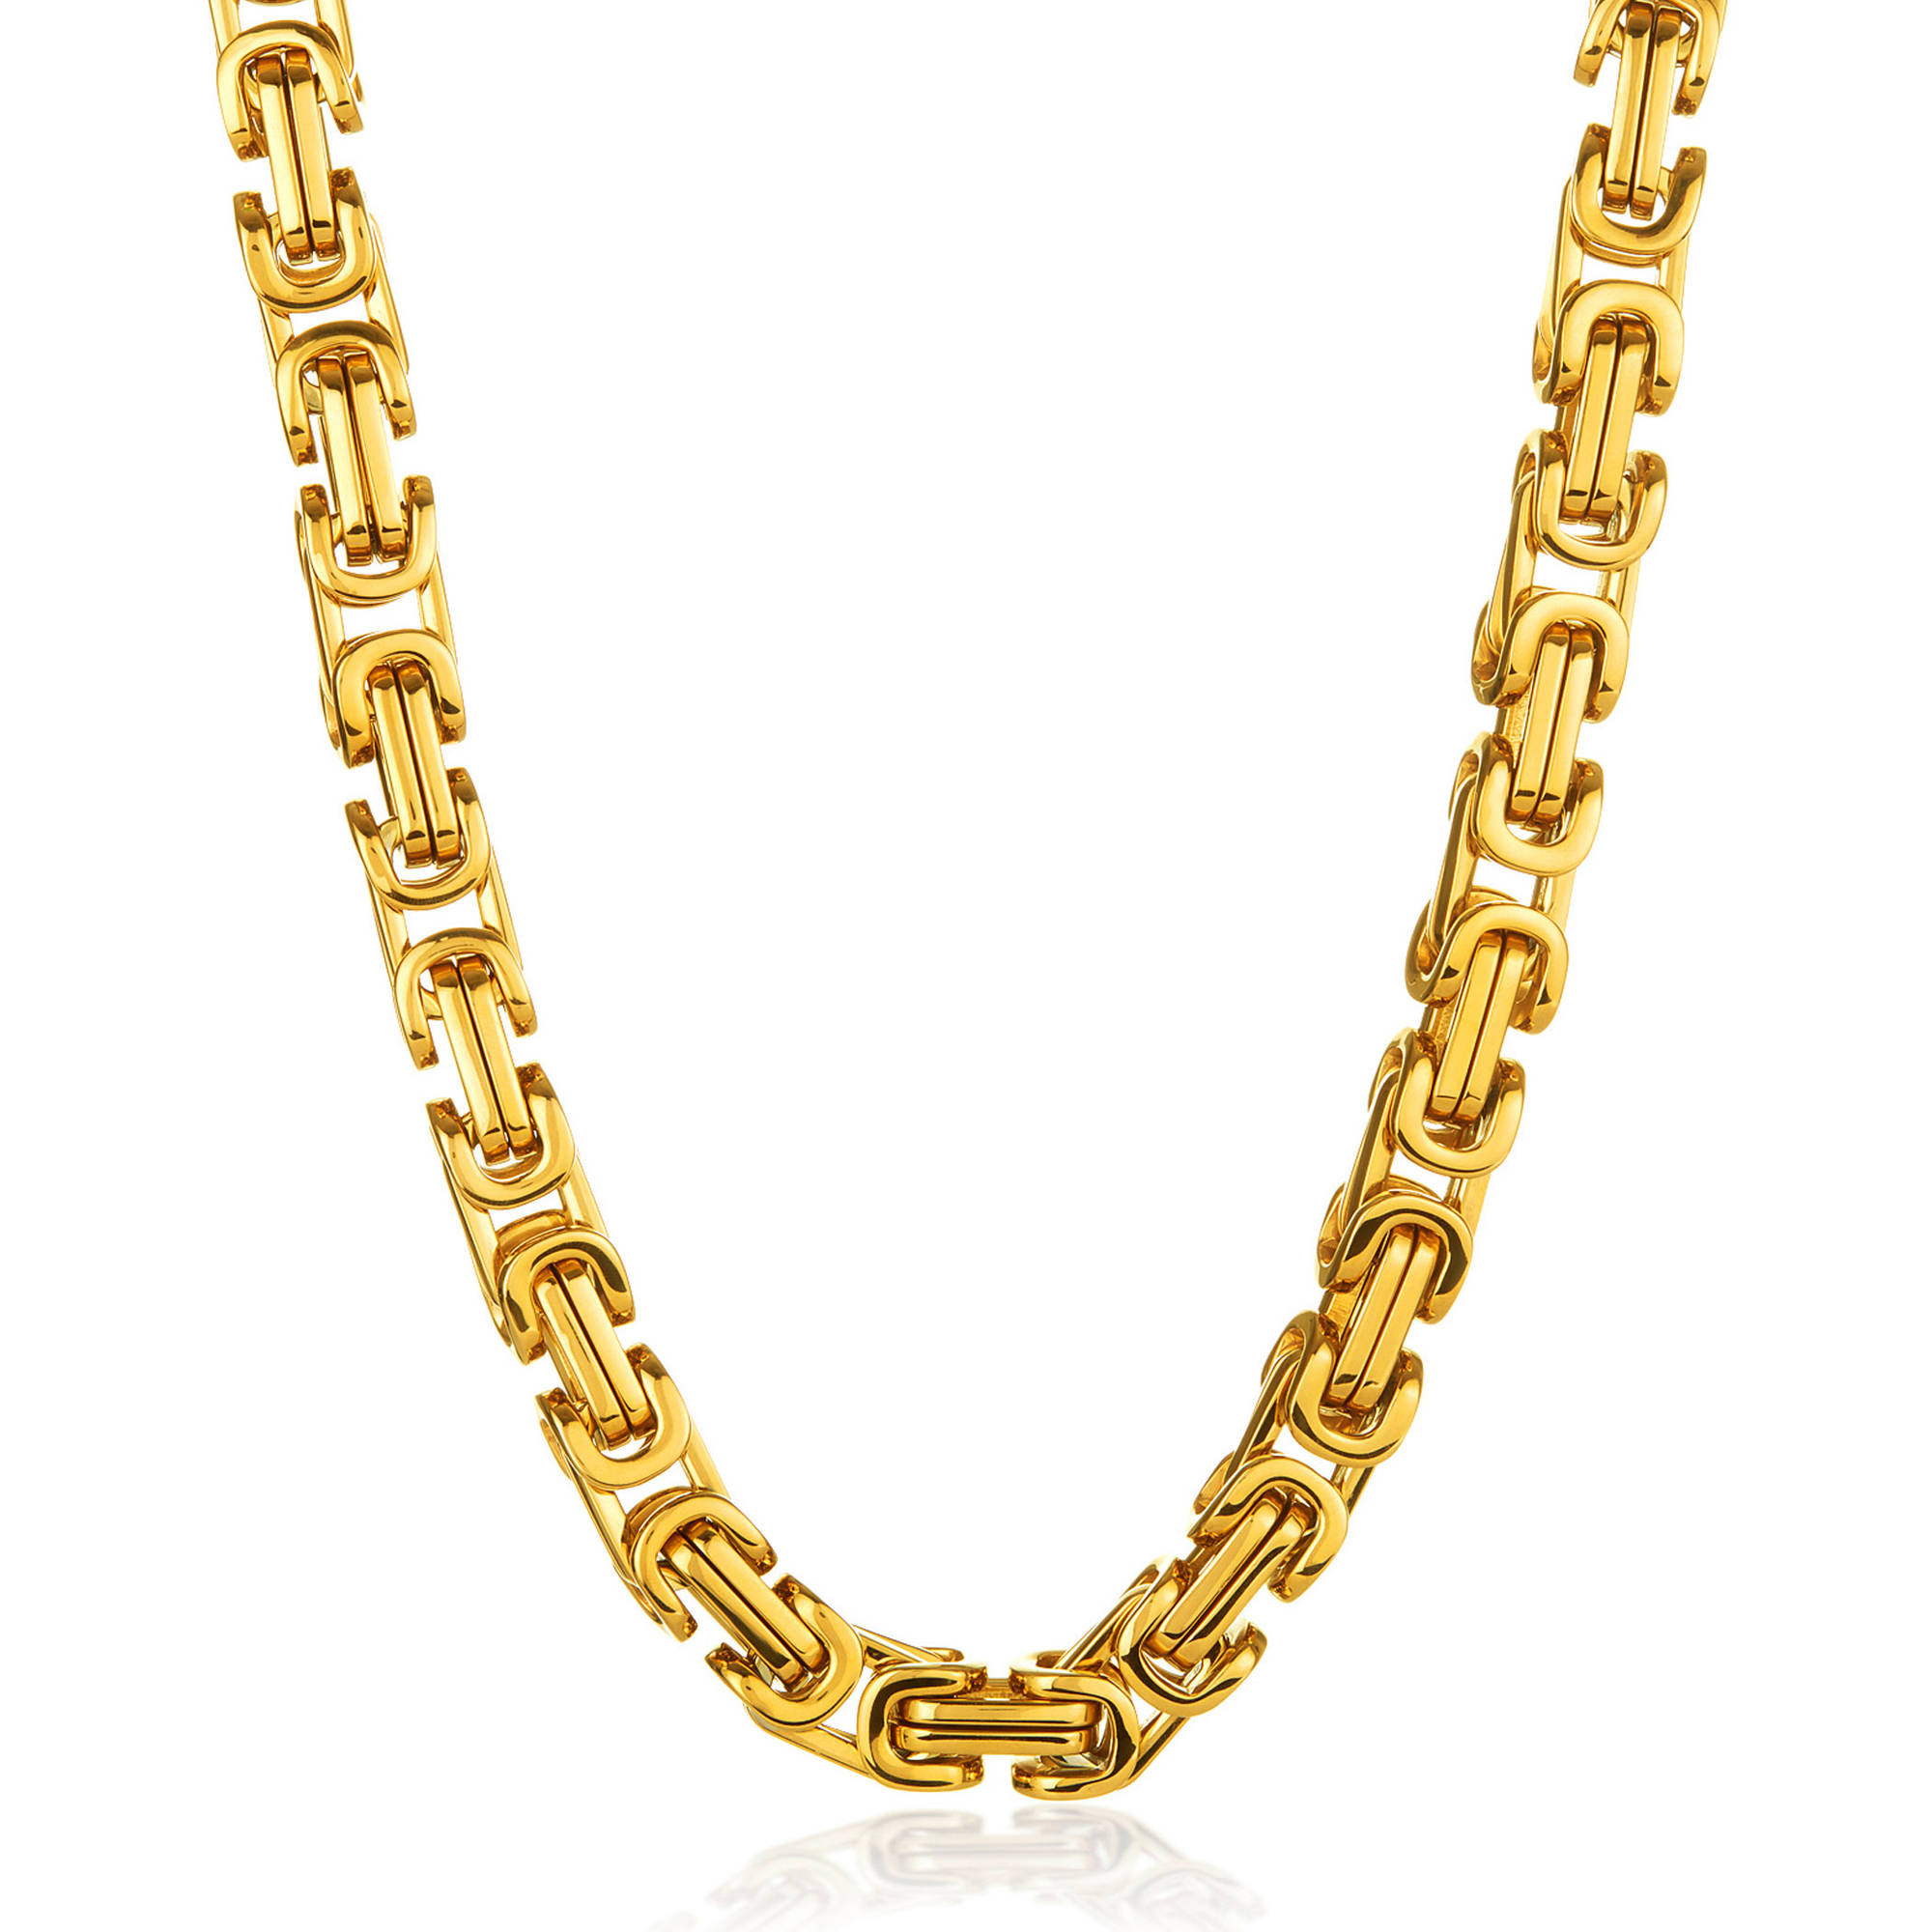 """Crucible Men's High-Polished Gold IP Stainless Steel Byzantine Chain Necklace (17mm), 30"""" by West Coast Jewelry"""